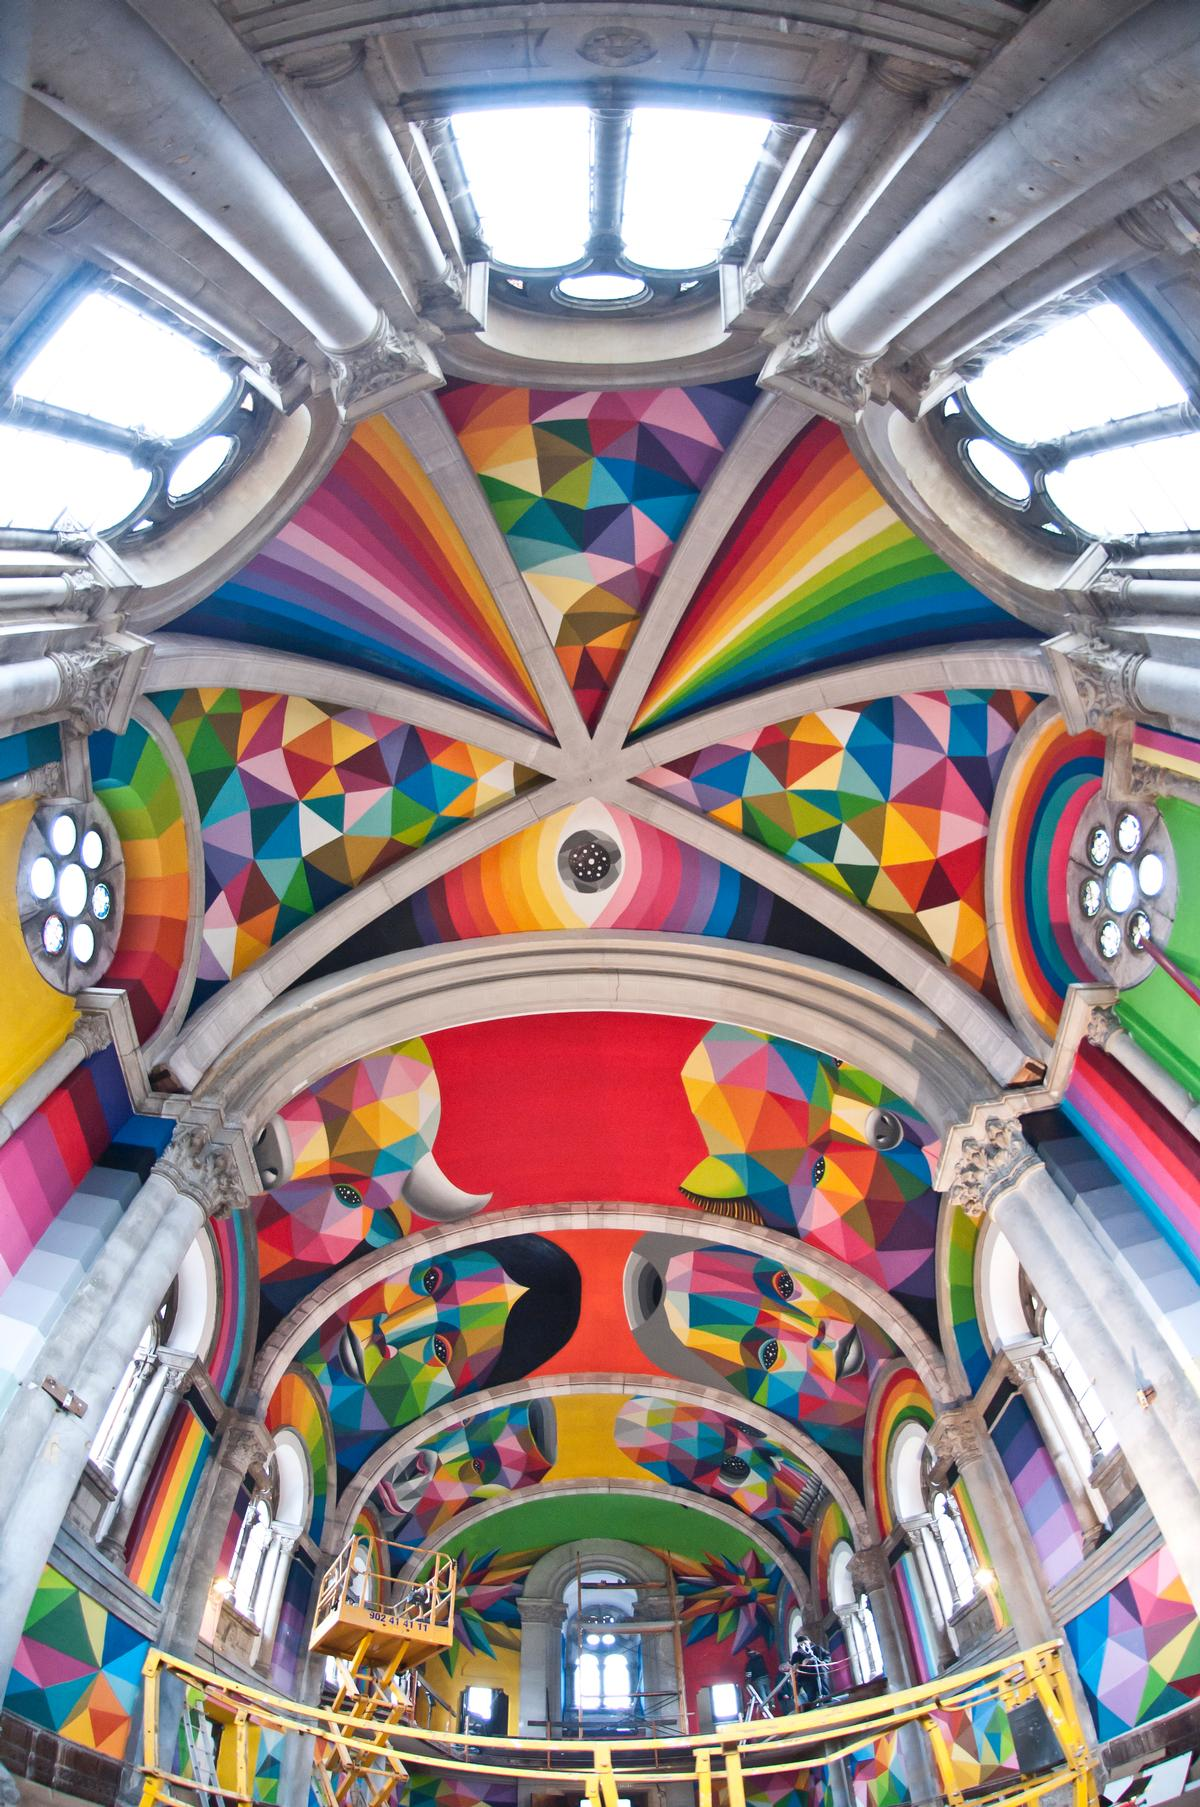 The unique paintings were created by Spanish artist Okuda San Miguel after money was raised by crowdfunding